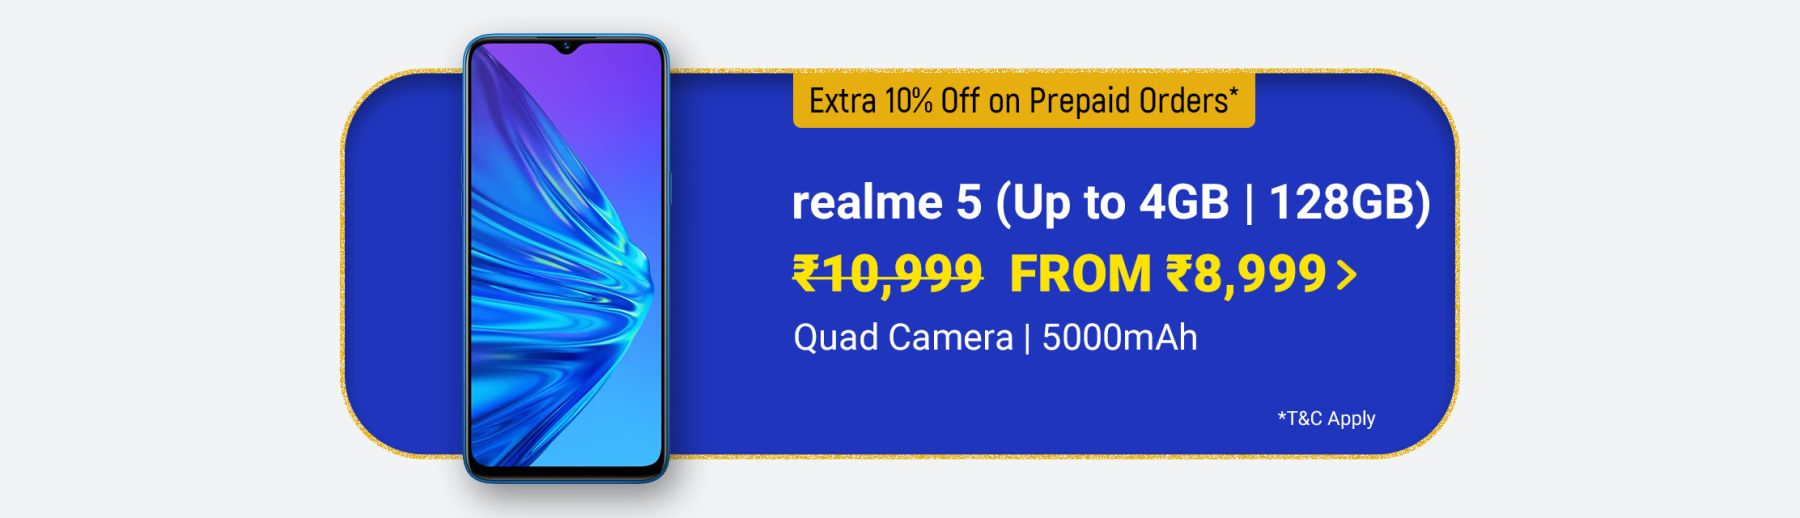 Flipkart-Big-Diwali-Sale-Biggest-Surprise-of-smartphone-RealME5-2019